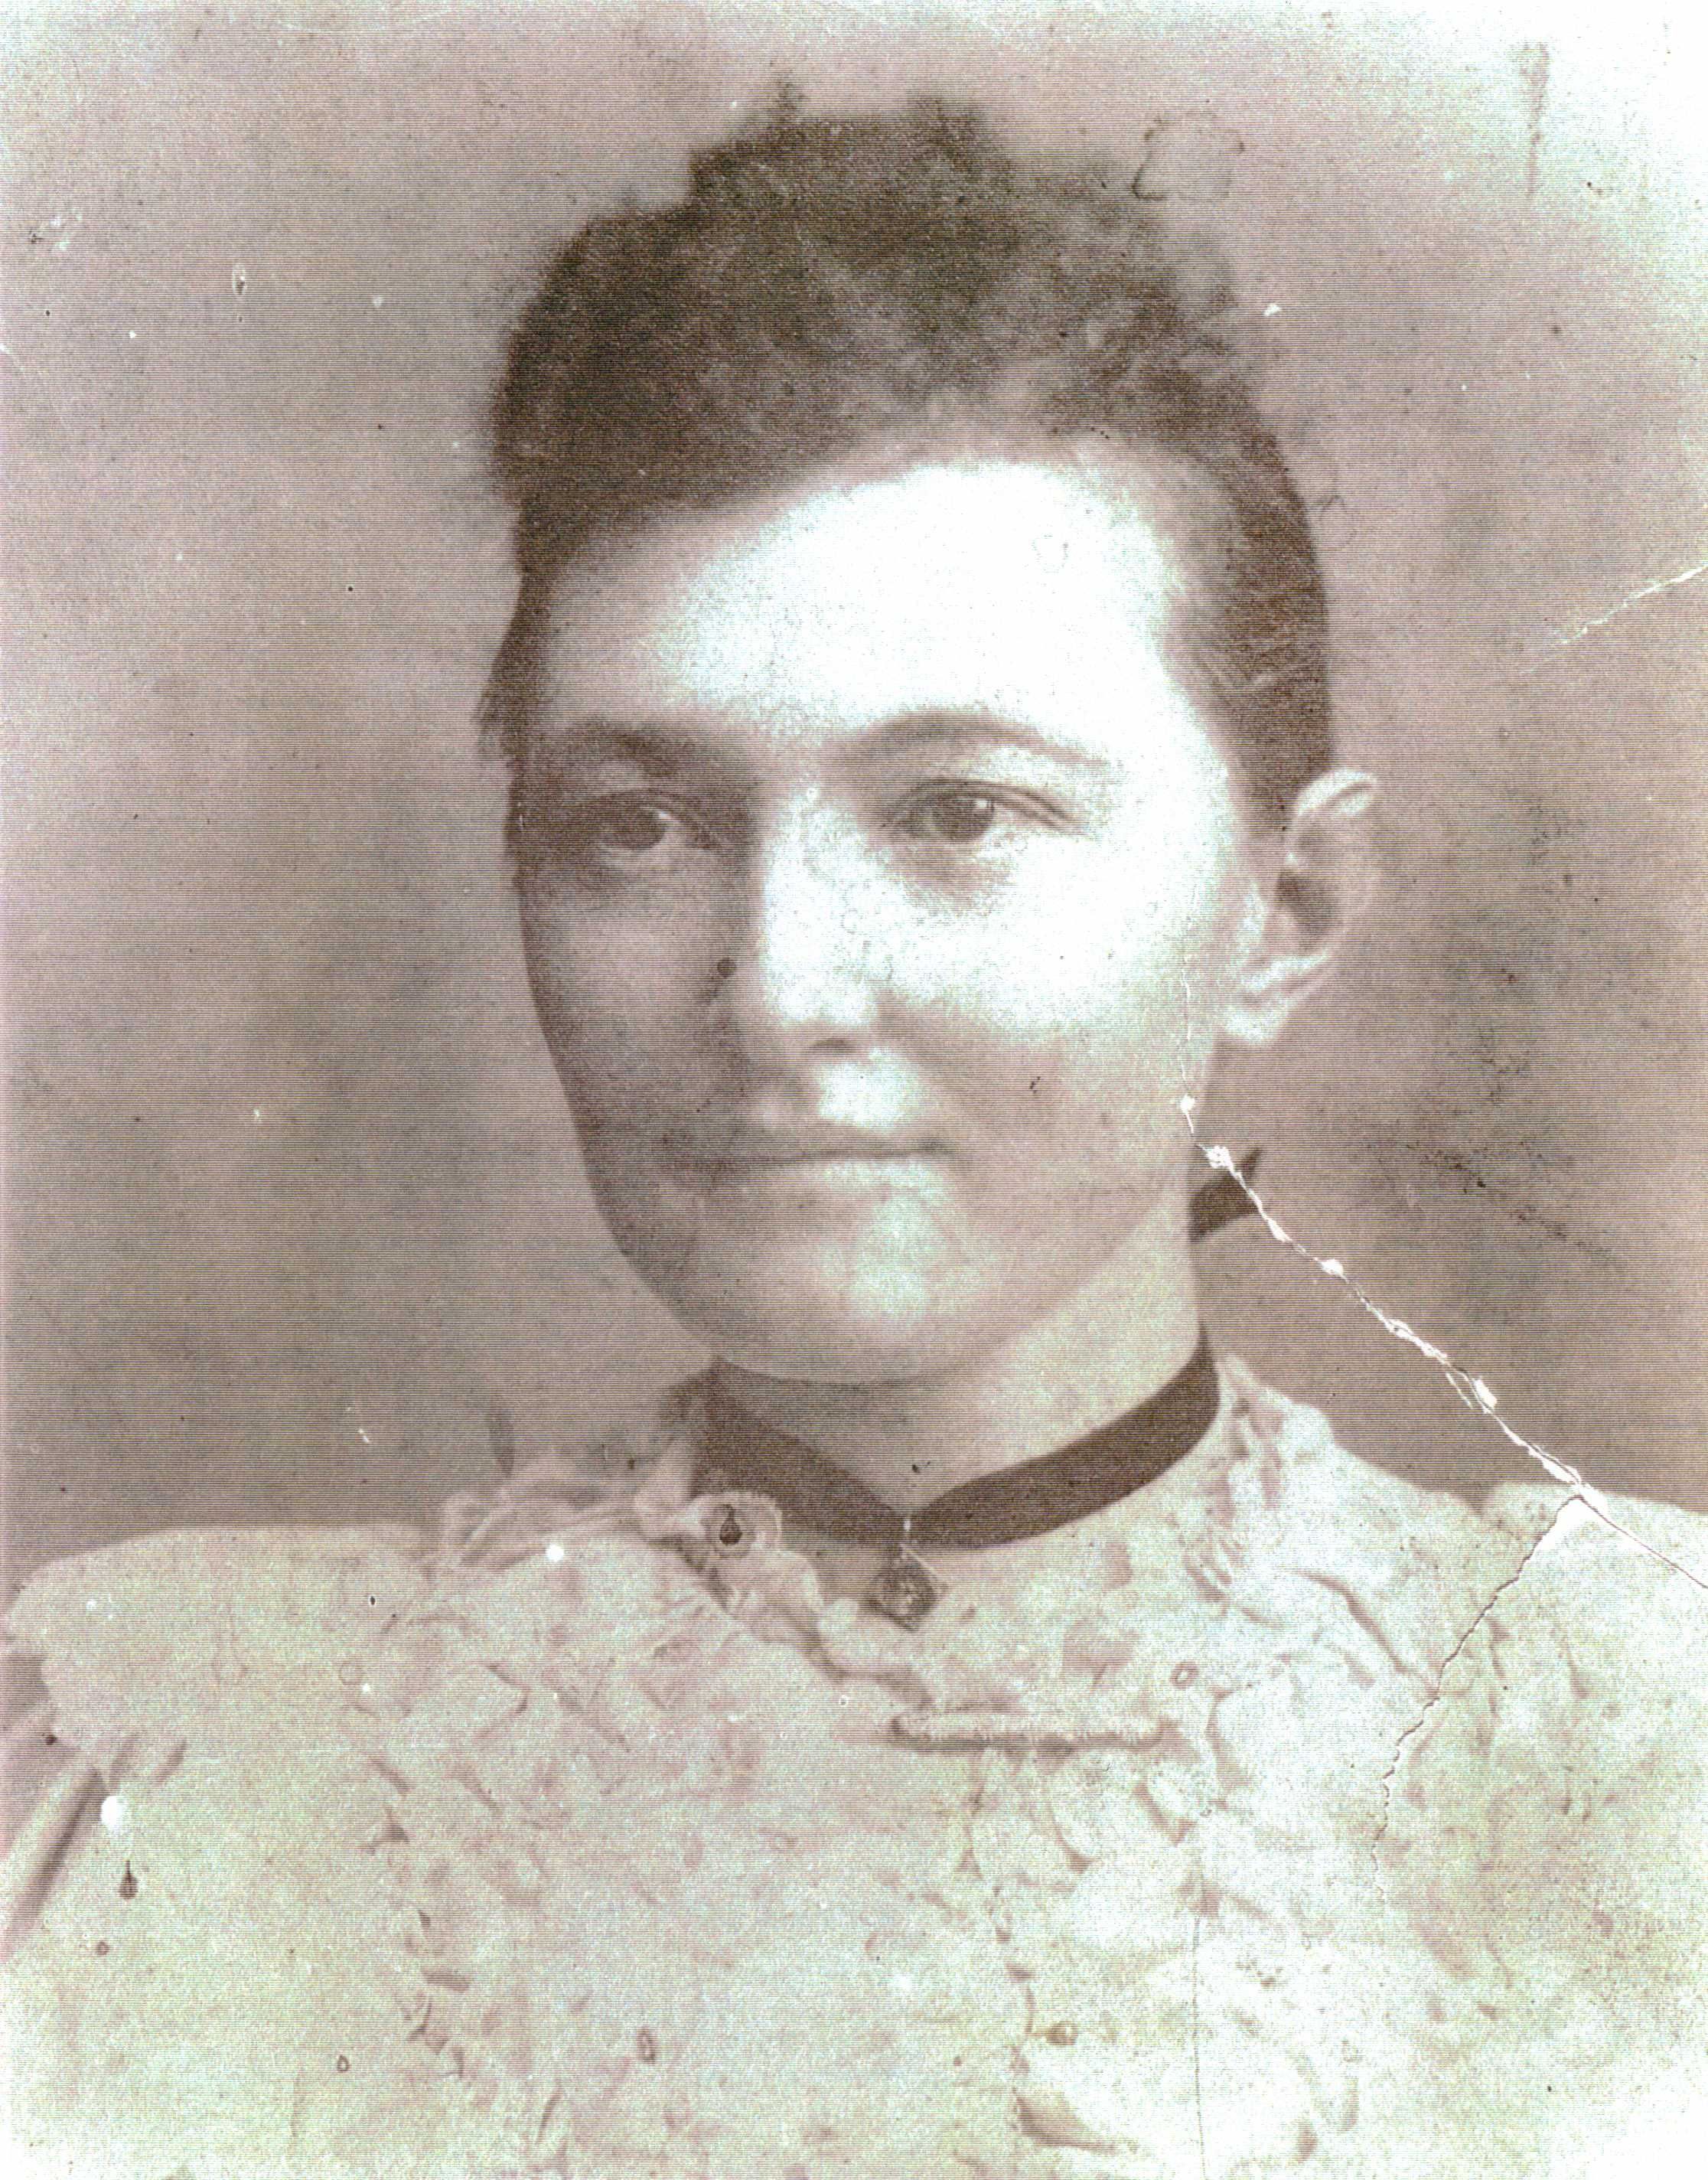 Sarah Theresa McCorriston, date unknown.